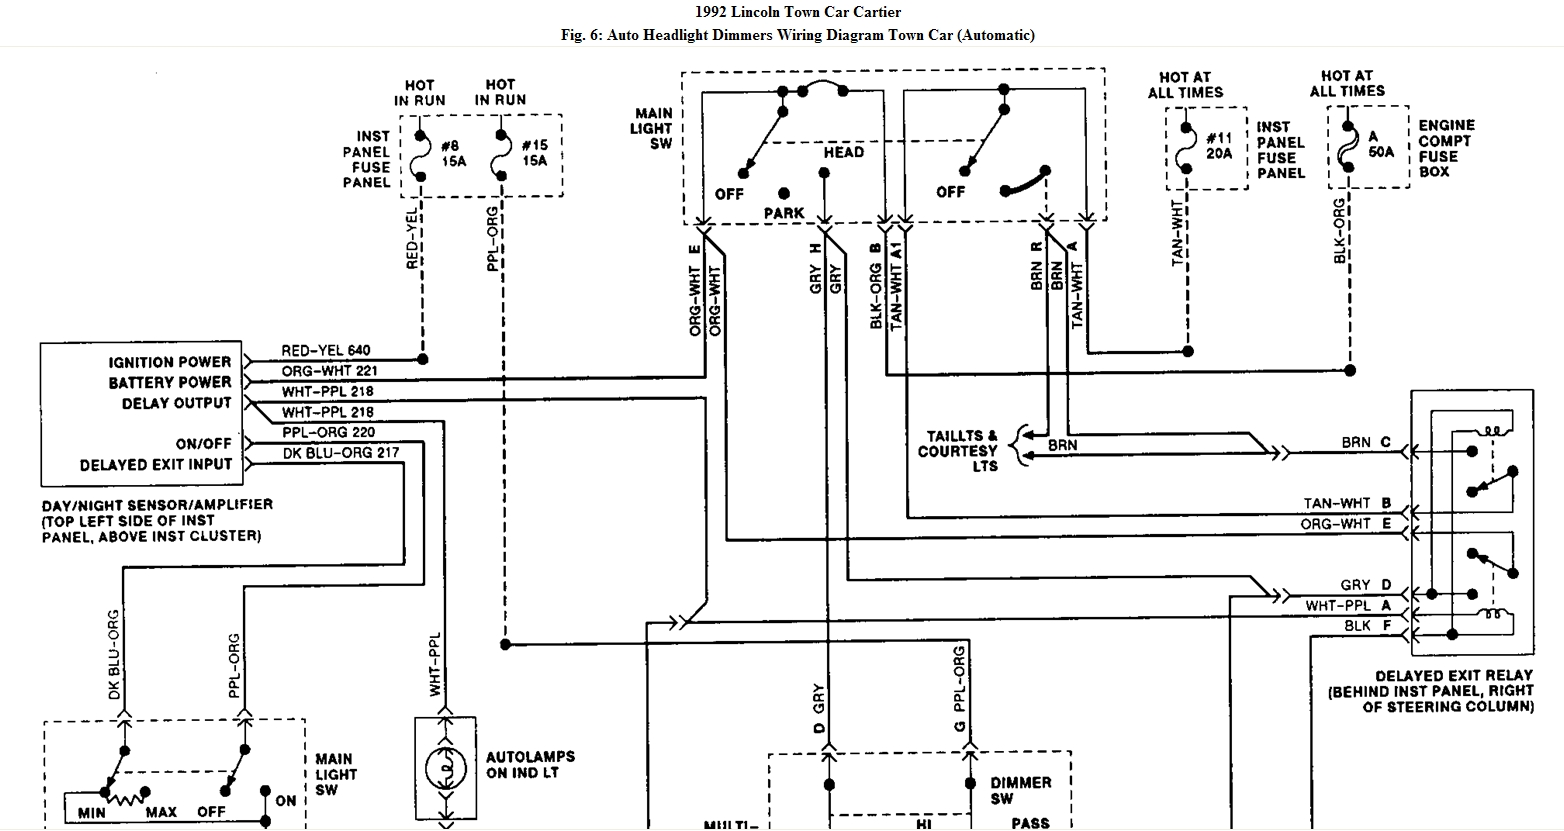 4BCB6 91 Town Car Fuse Diagram   Wiring Resources on car starter diagram, car spark plug diagram, car hose diagram, car wiring, car start, car tube diagram, circuit breaker diagram, car horn diagram, car dimensions diagram, car belt diagram, car hood, car stalling, car circuit diagram, car frame diagram, car regulator diagram, car controller diagram, car pump diagram, car door latch diagram, car switch diagram, car front axle,